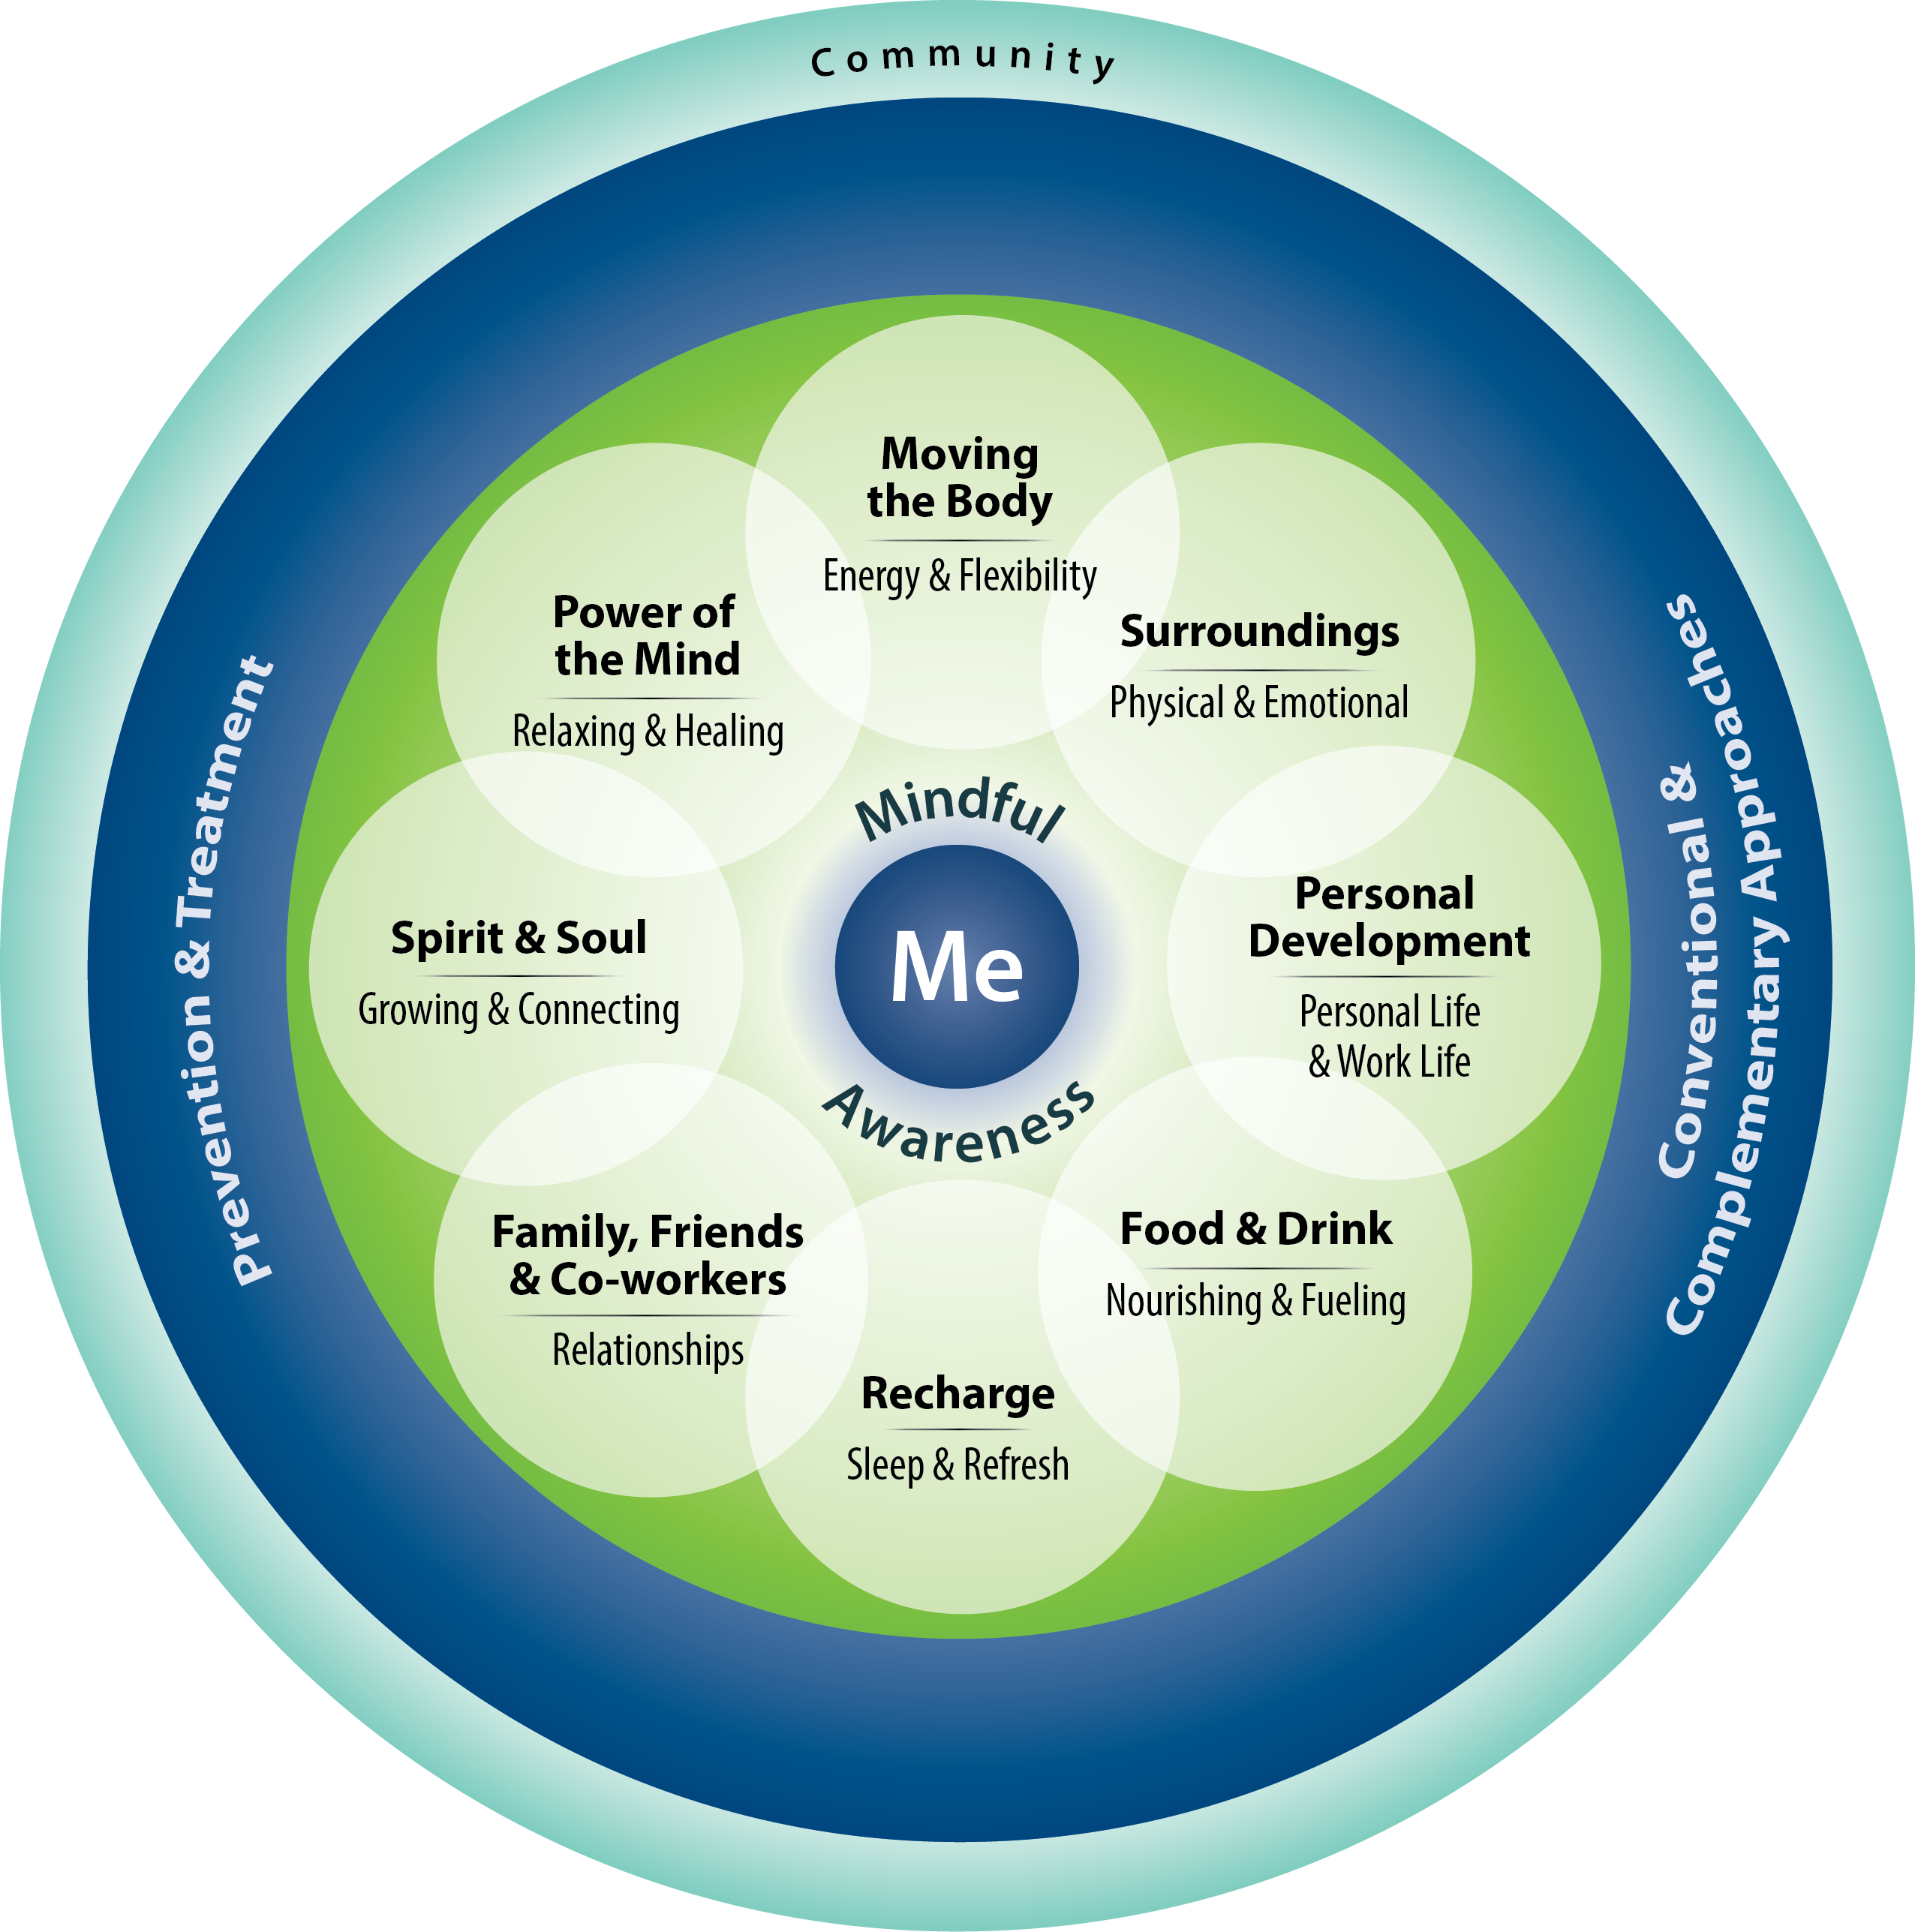 """Components of Proactive Health and Well-Being Model: The """"Circle of Health"""" Large light blue circle that says """"community"""". Inside that circle is a dark blue circle that says """"Prevention & Treatment"""" on the right and """"Conventional & Complementary Approaches"""" on the left Inside of that is a bright green circle. Overlaid on the bright green circle are smaller white circles. Clockwise from the top they say """"Working Your Body; Energy & Flexibility,"""" """"Surroundings; Physical &Emotional,"""" """"Personal Development; Personal Life & Work Life,"""" """"Food & Drink; Nourishing & Fueling,"""" """"Recharge; Sleep & Refresh,"""" """"Family, Friends & Coworkers; Listening & Being Heard,"""" """"Spirit & Soul; Growing & Connecting,"""" and """"Power of the Mind; Relaxing & Healing."""" At the center of this graphic is a small blue circle that says """"Me."""" Above the circle it says """"Mindful"""" and below the circle it says """"Awareness""""."""